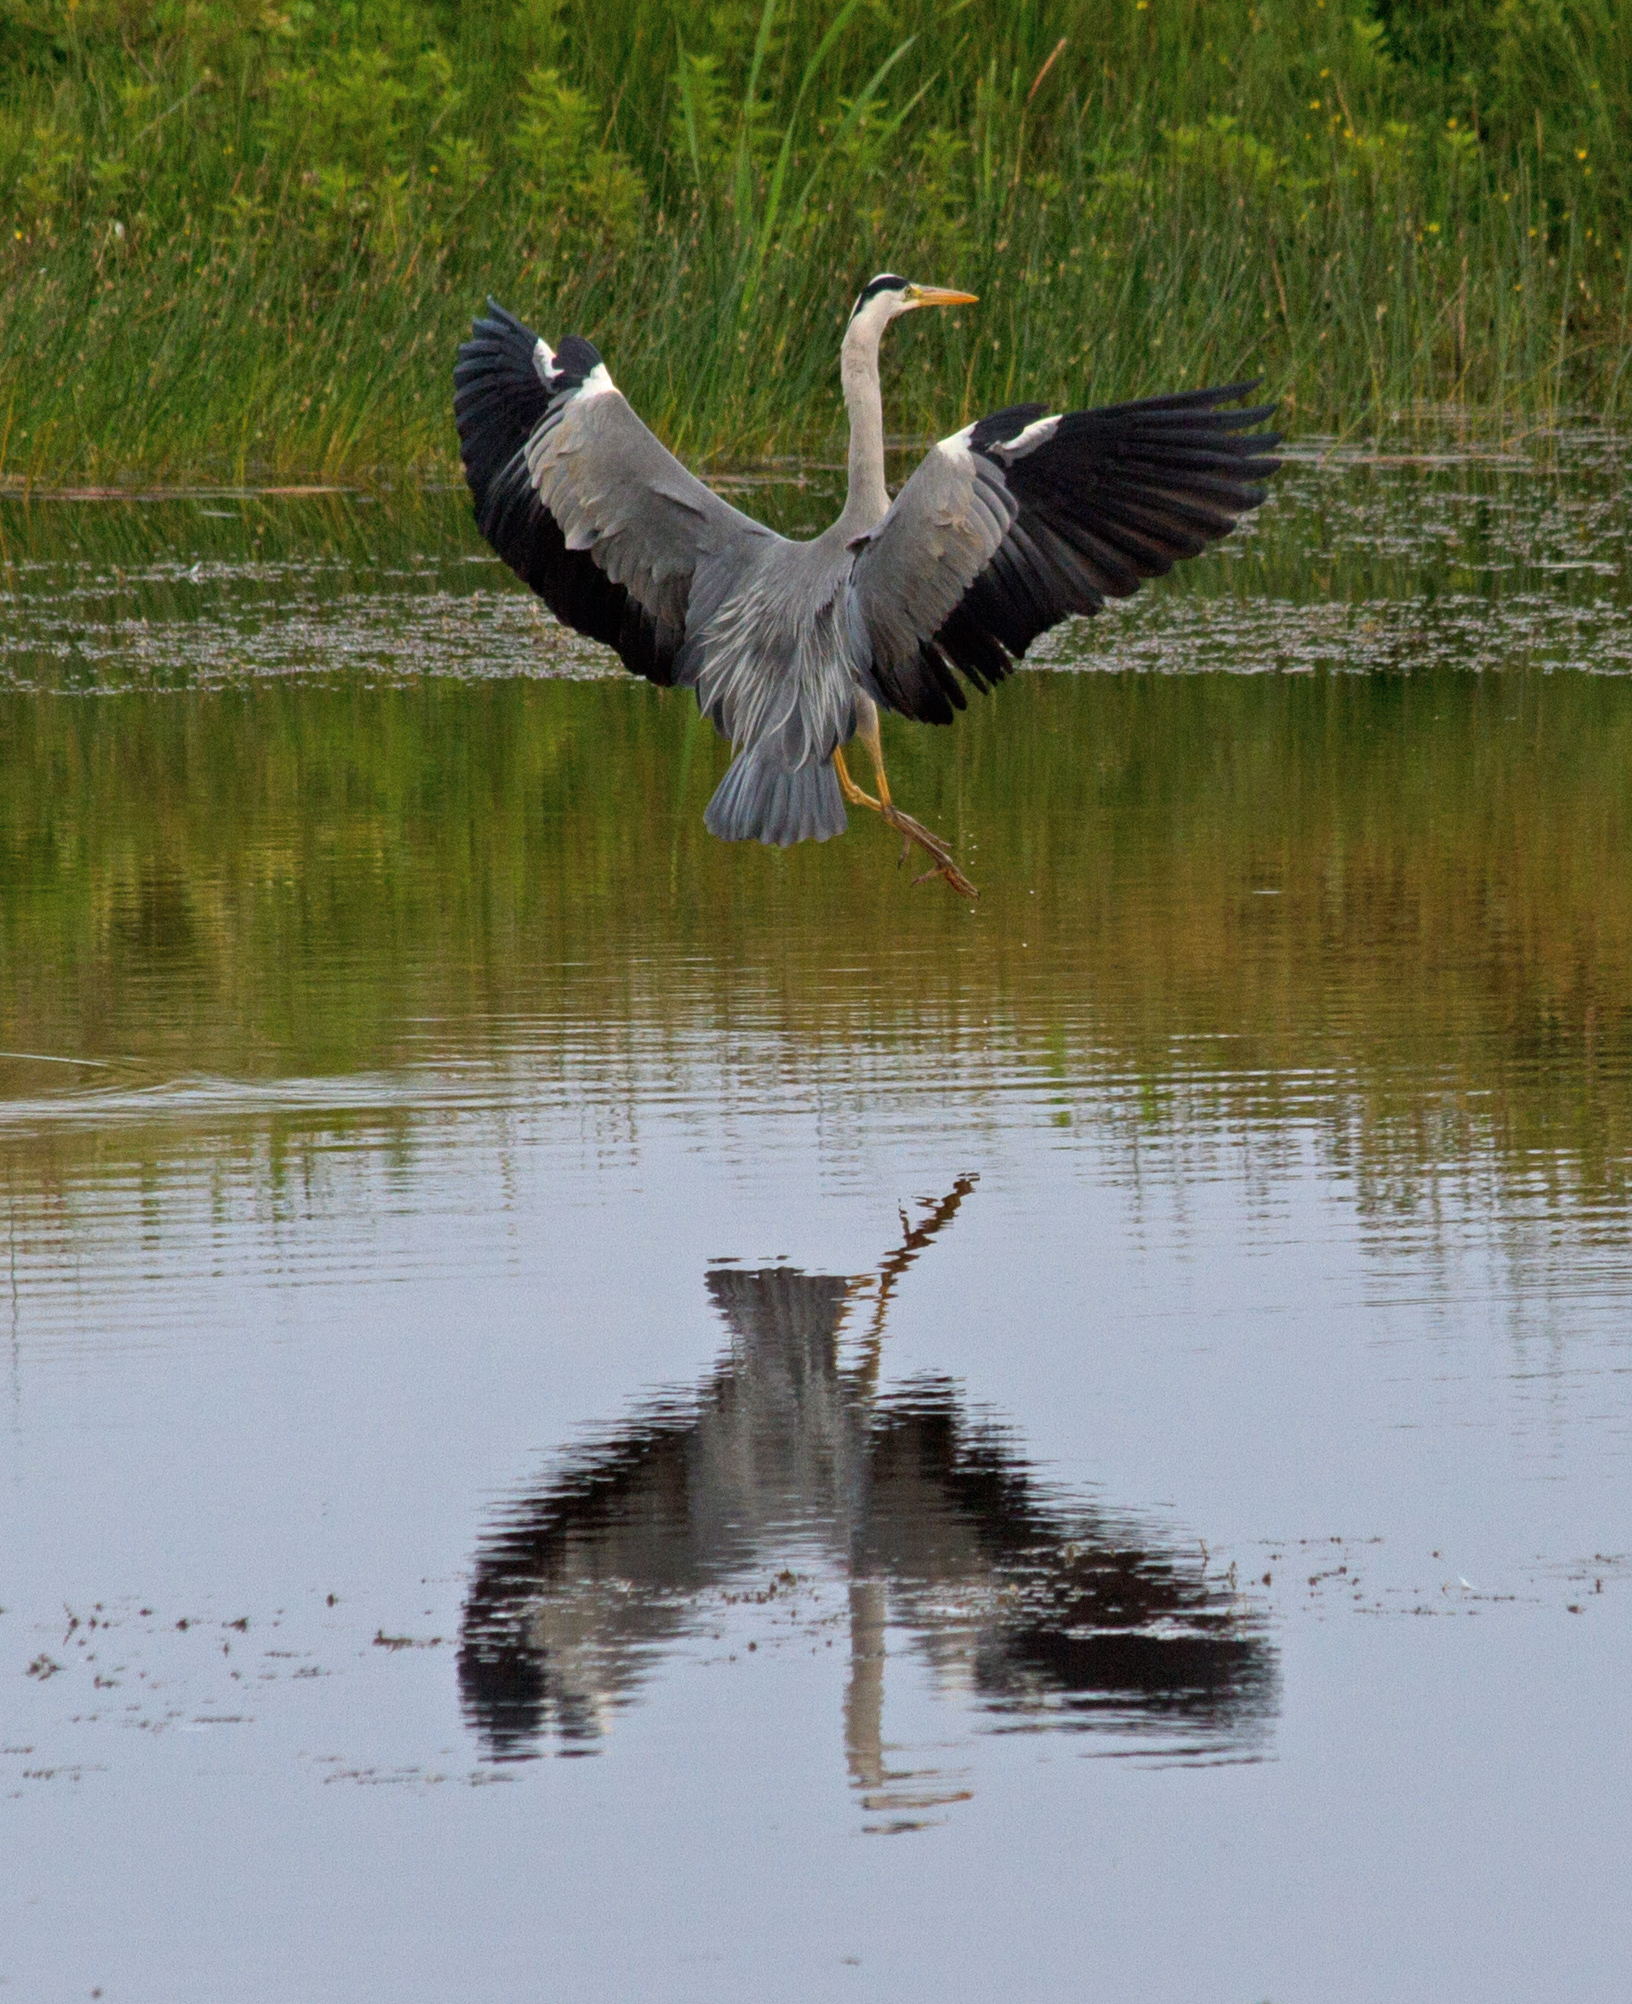 001-heron-and-reflection-1-1-60d751ab3161470a362d12b5733fa6a28e5d9019